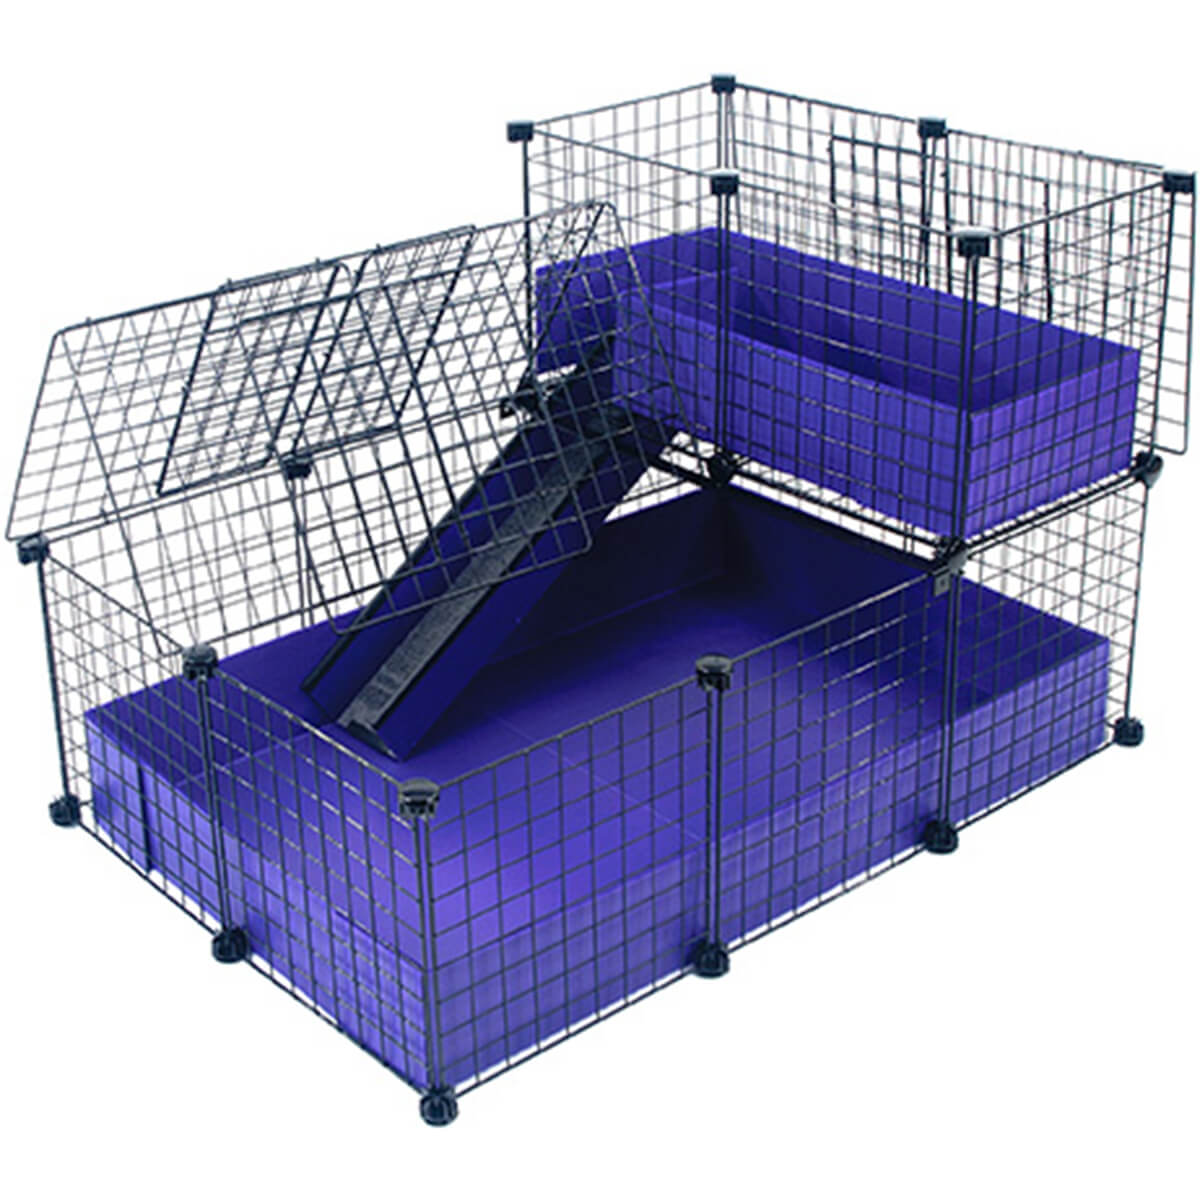 Small with narrow loft covered deluxe covered cages c for Small guinea pig cages for sale